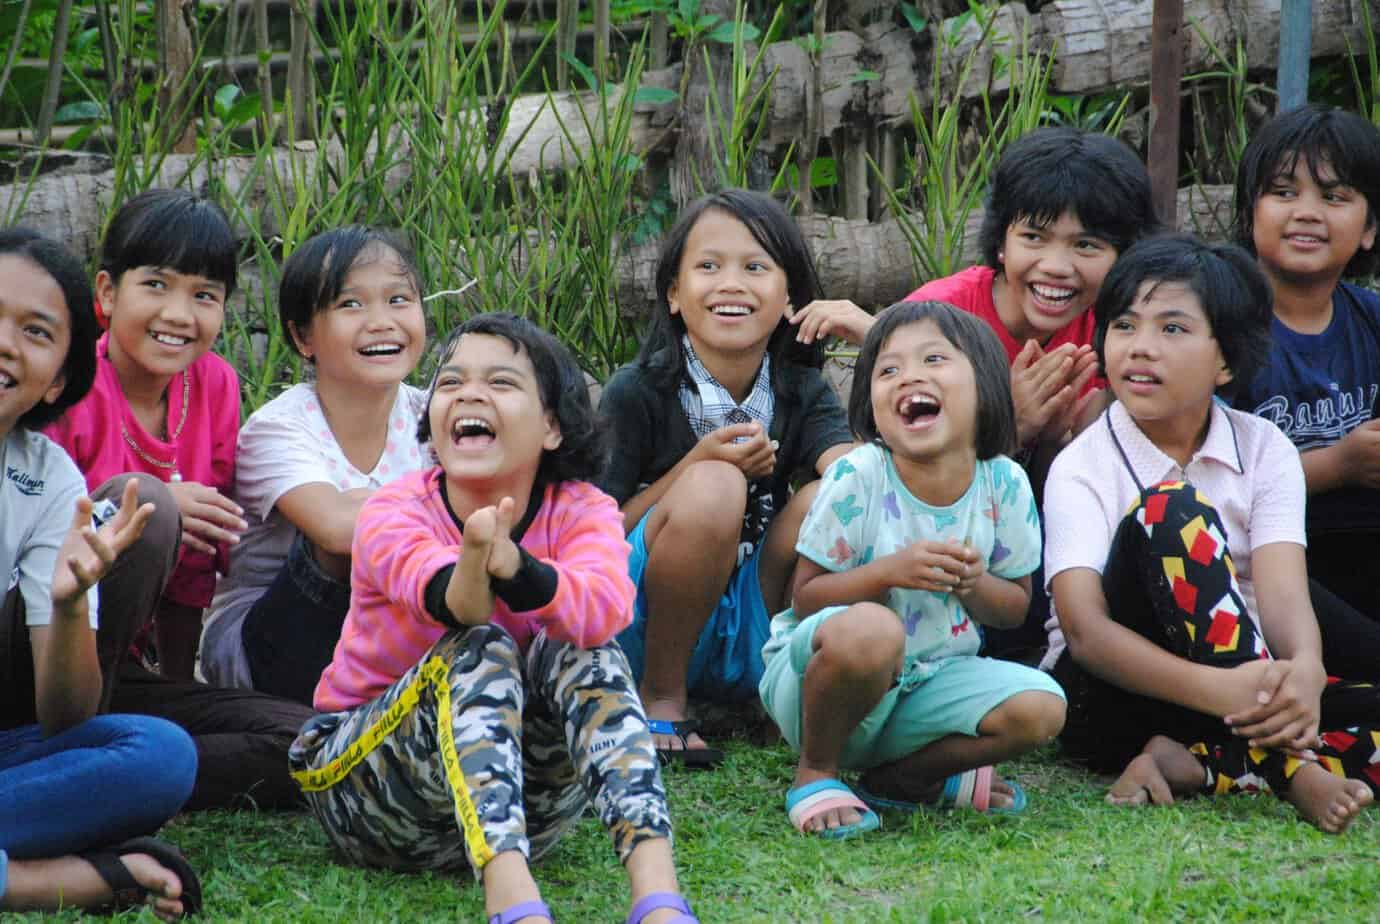 Laughing children in Sumatra, Indonesia